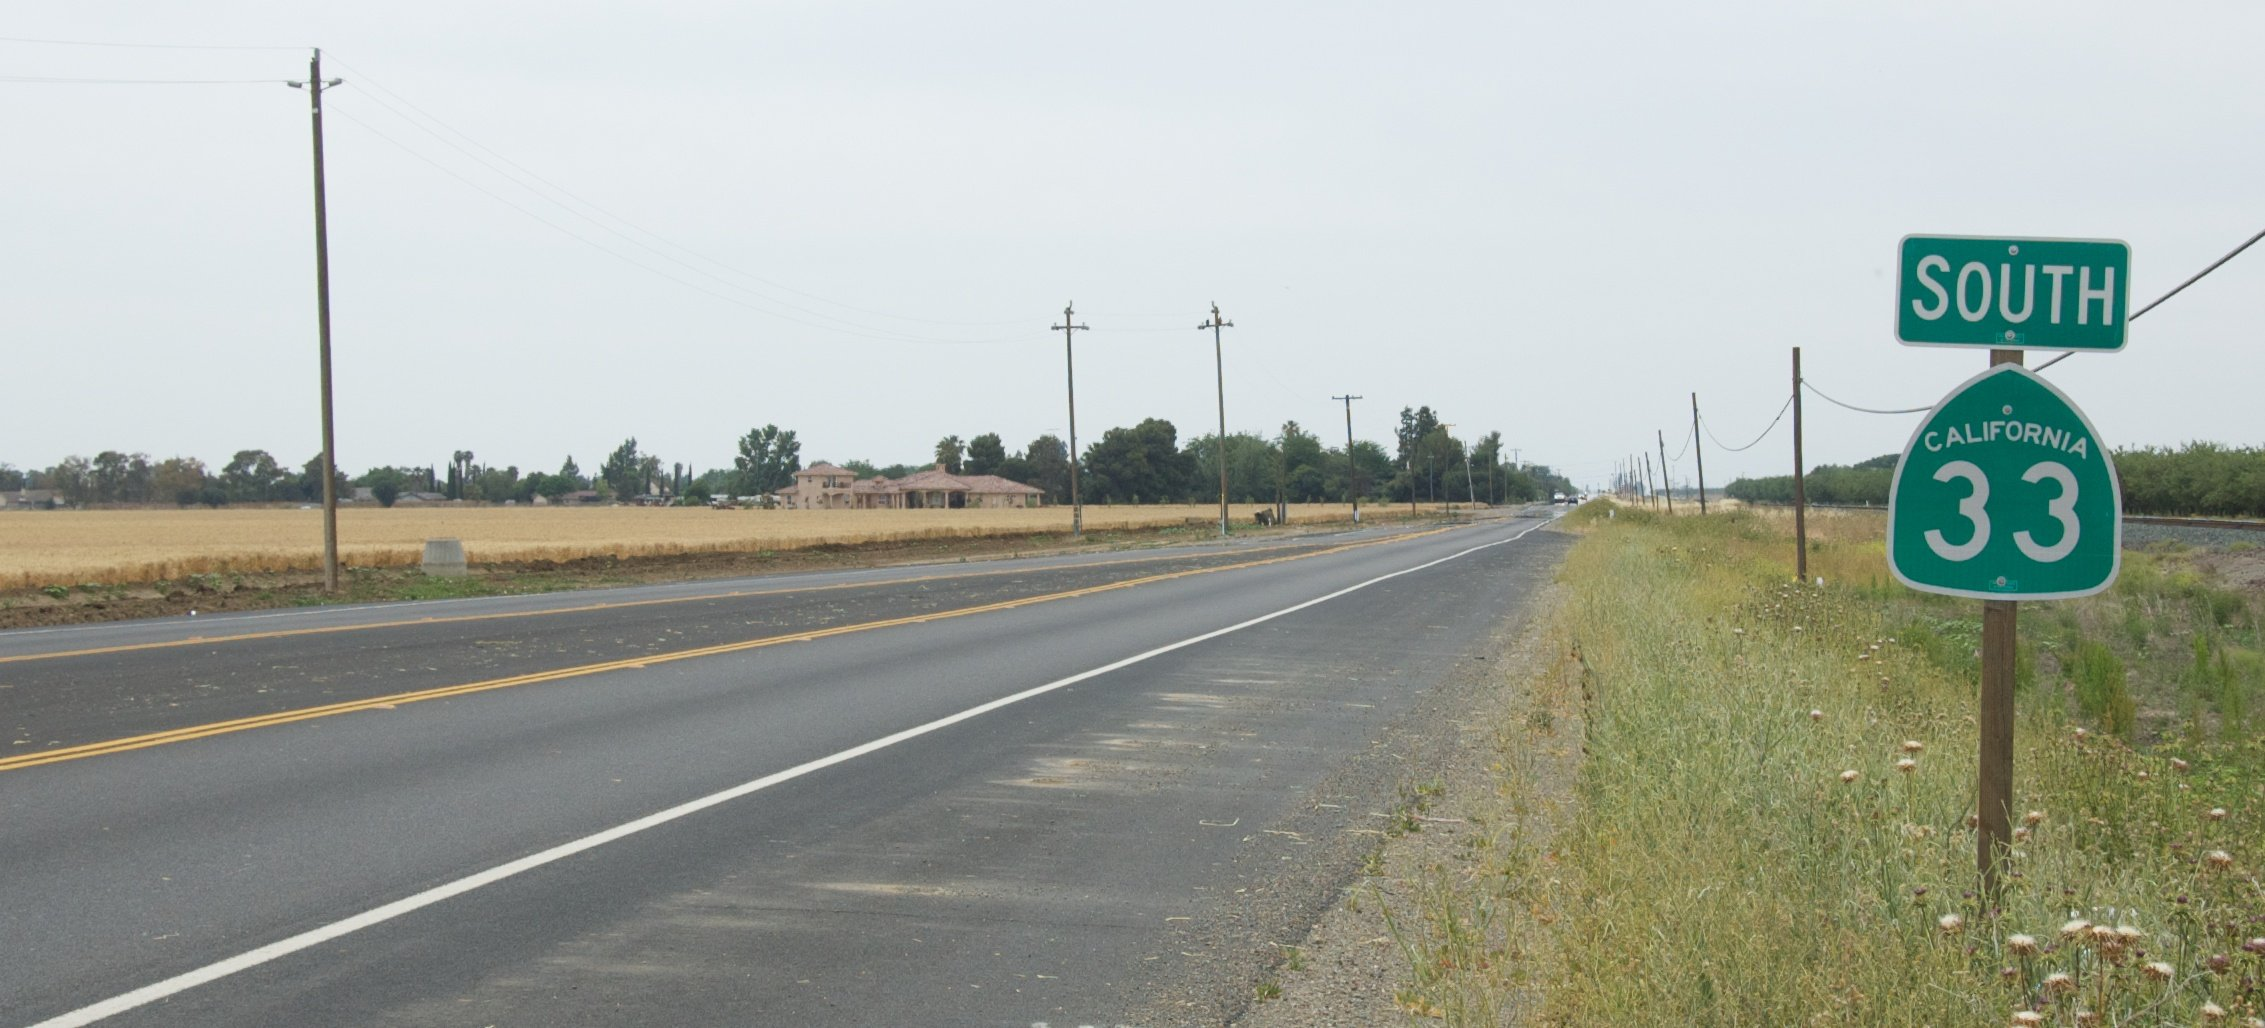 Start/end of SR 33, just south of Tracy, CA